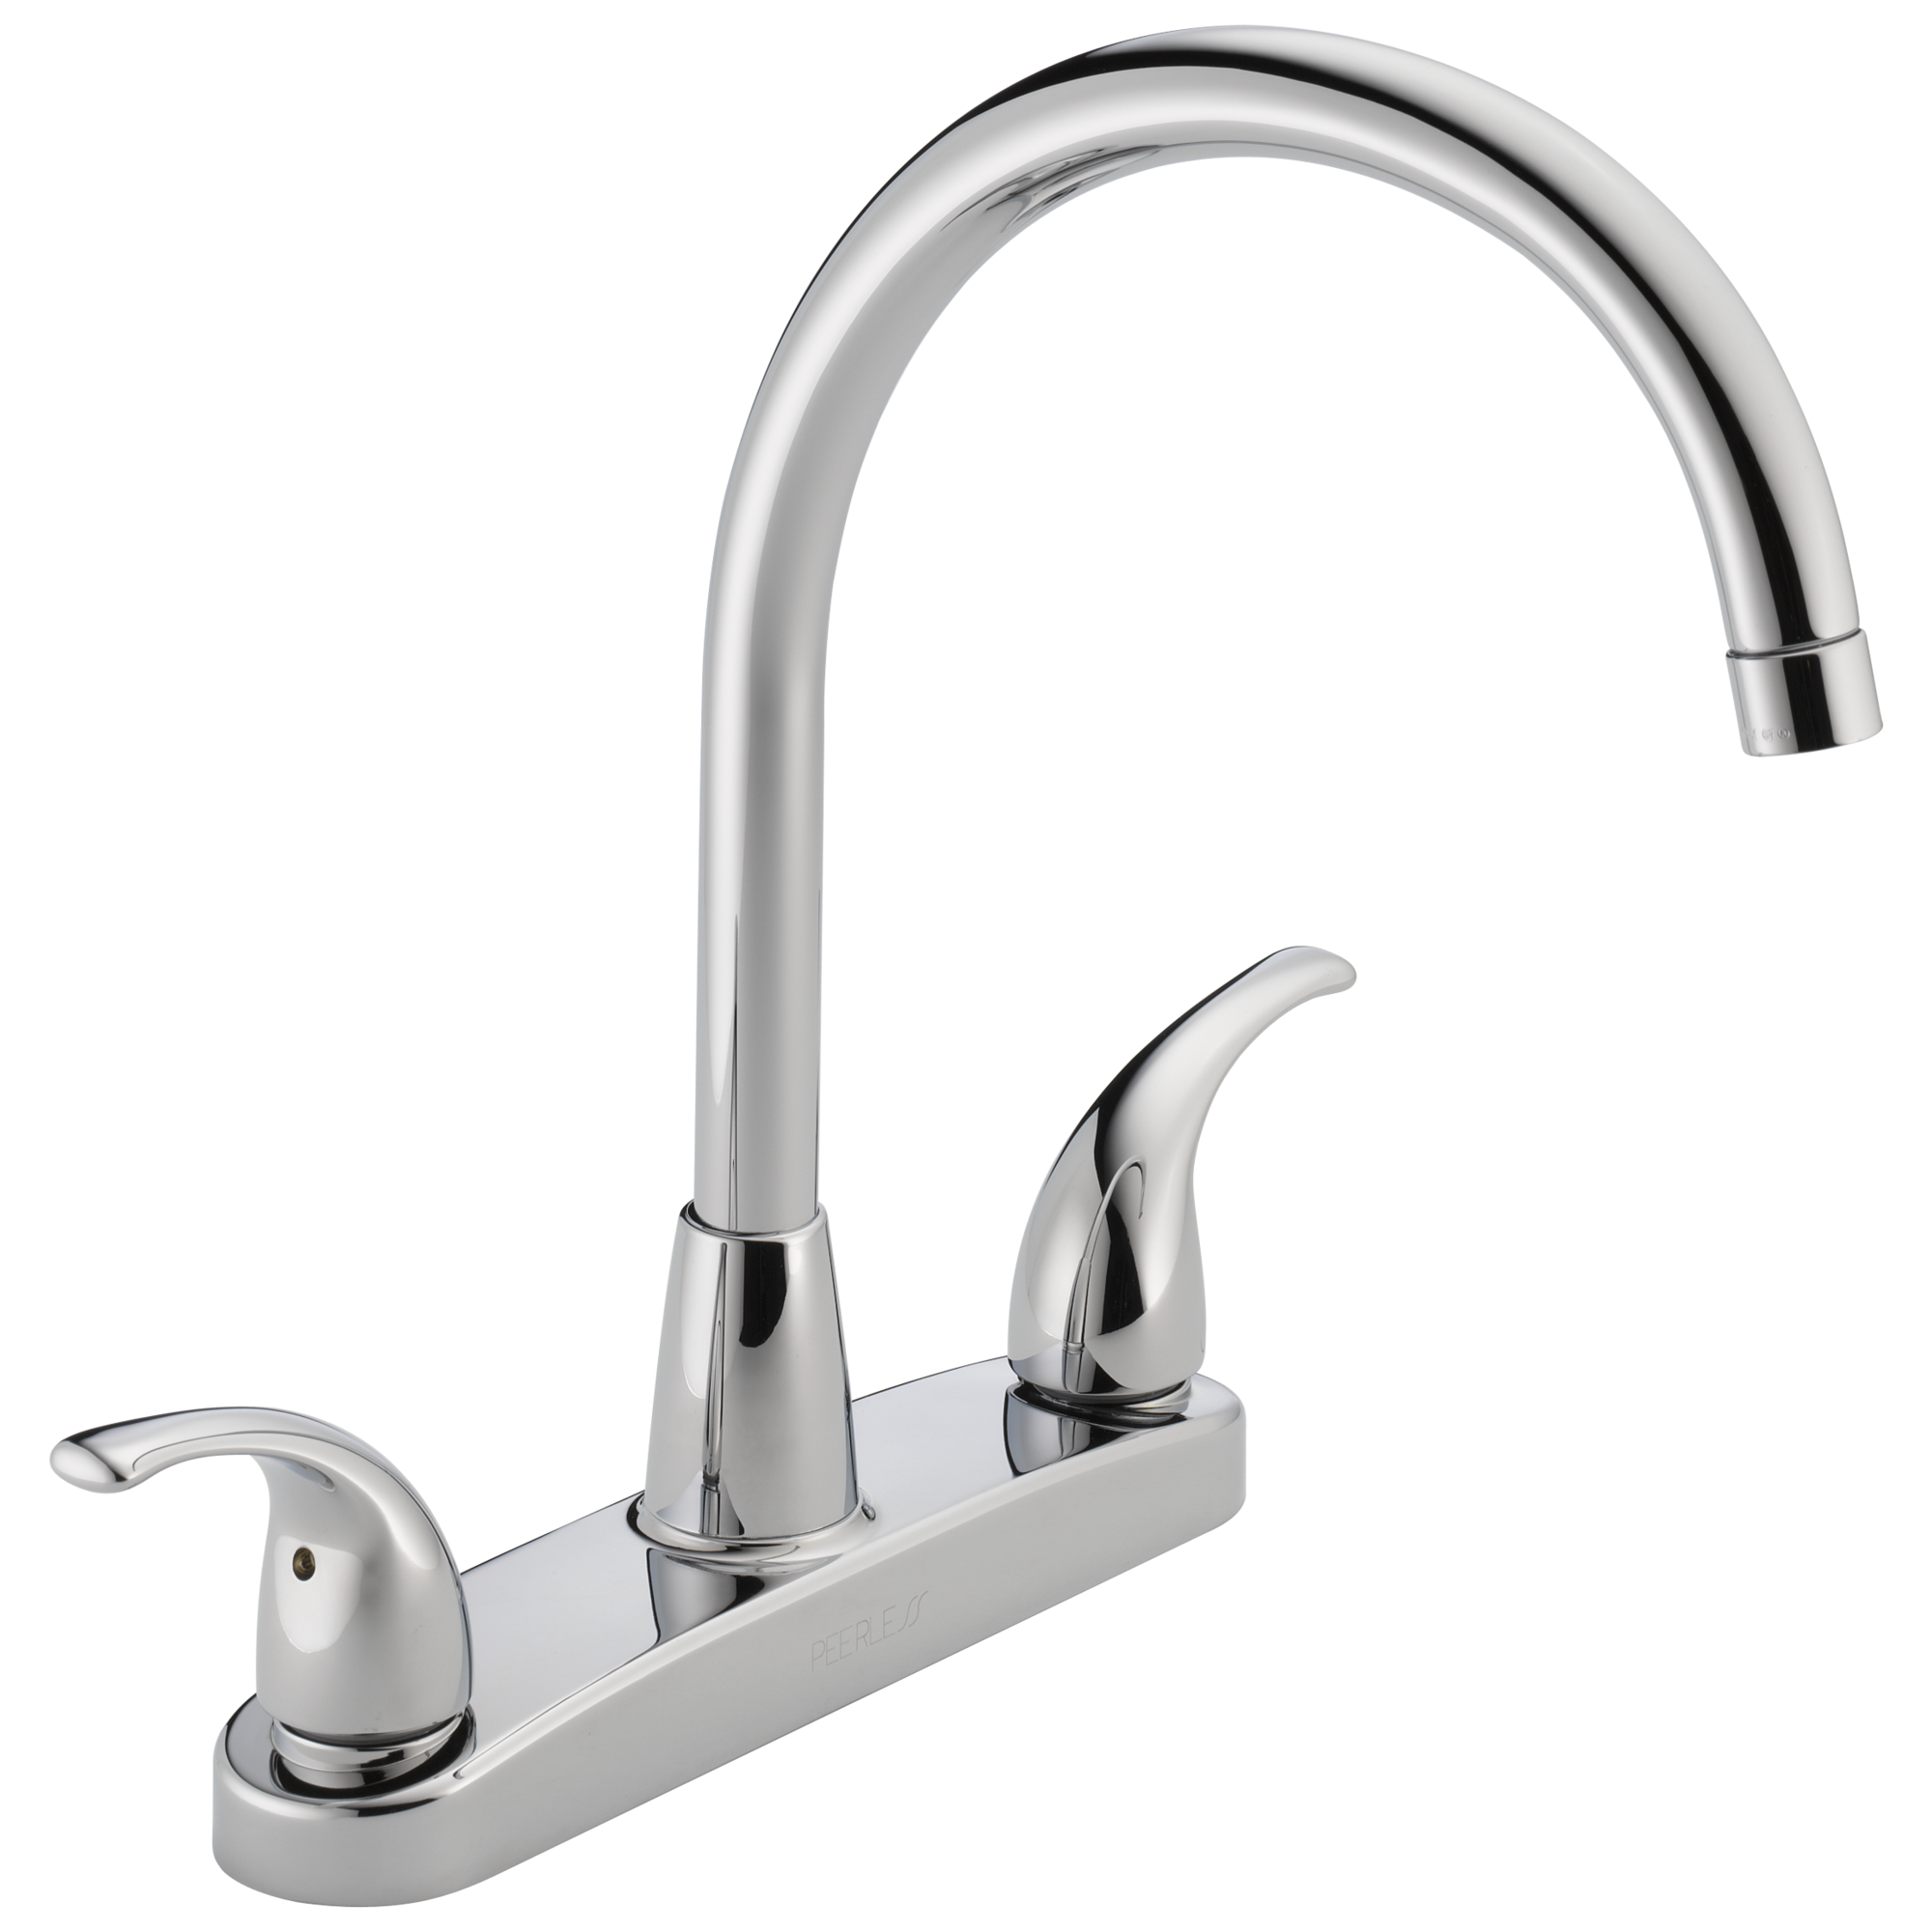 moen diagram bathroom kitchen designs parts faucet